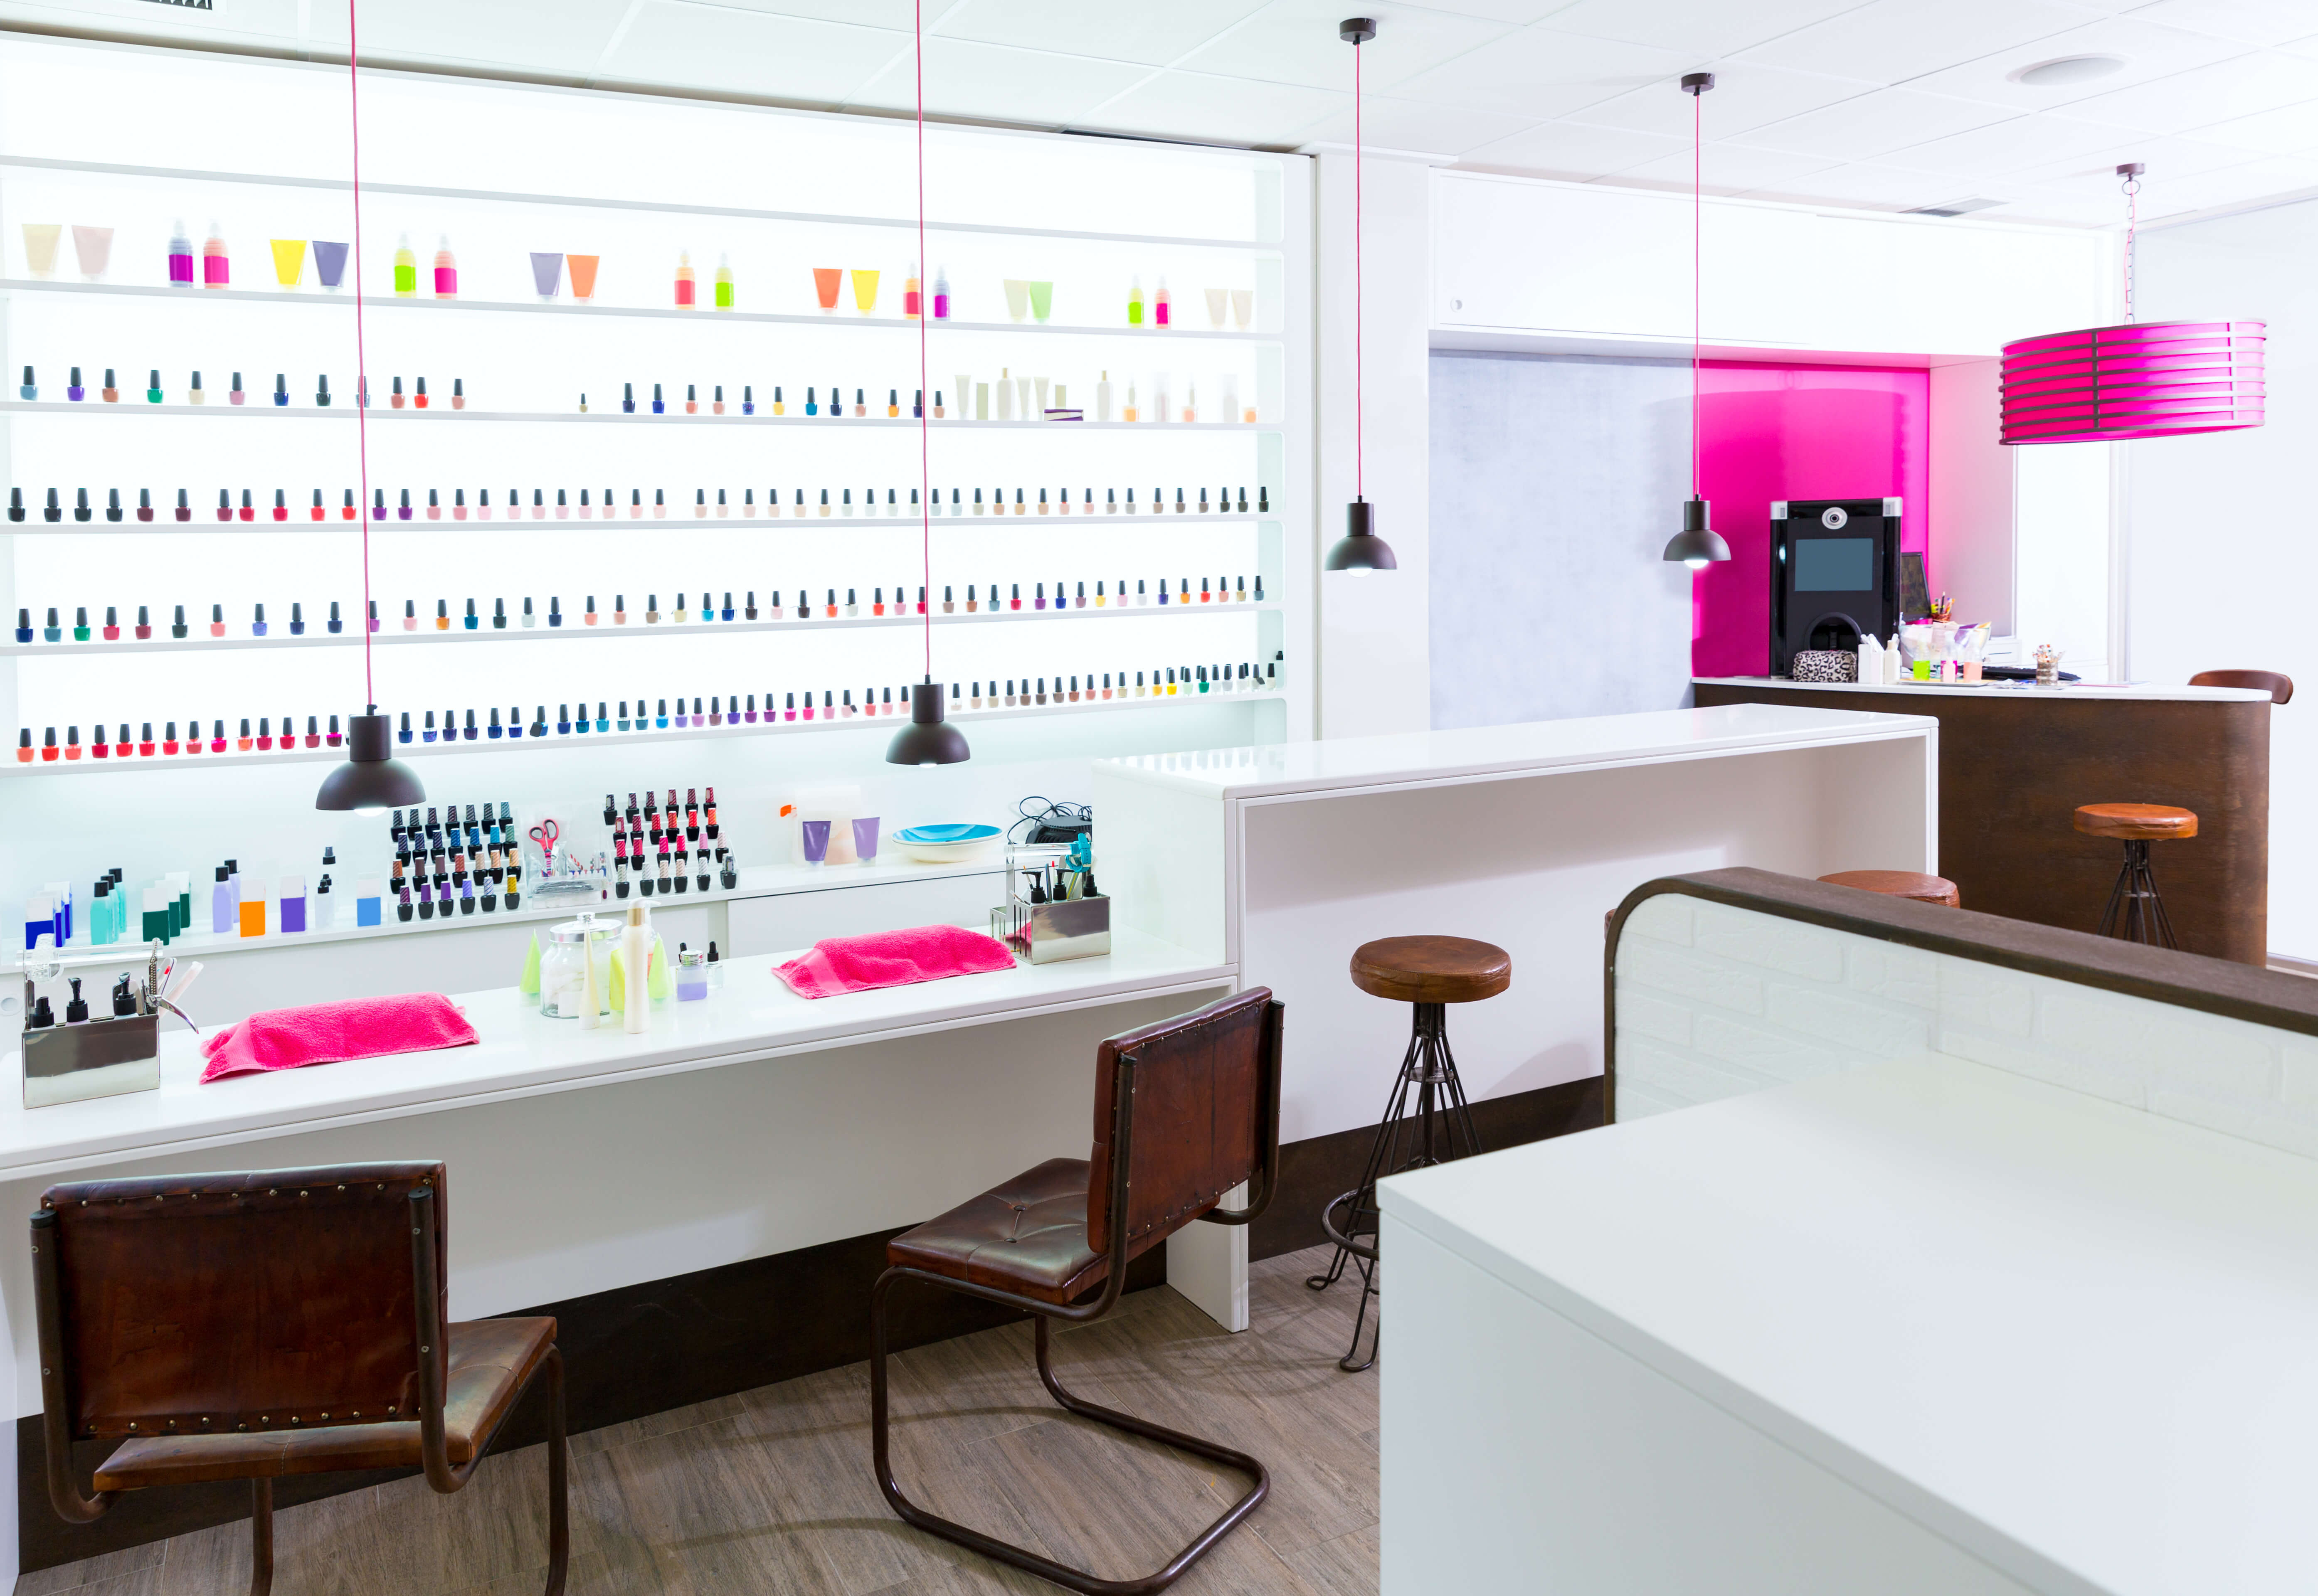 cosmetic units in a nail salon